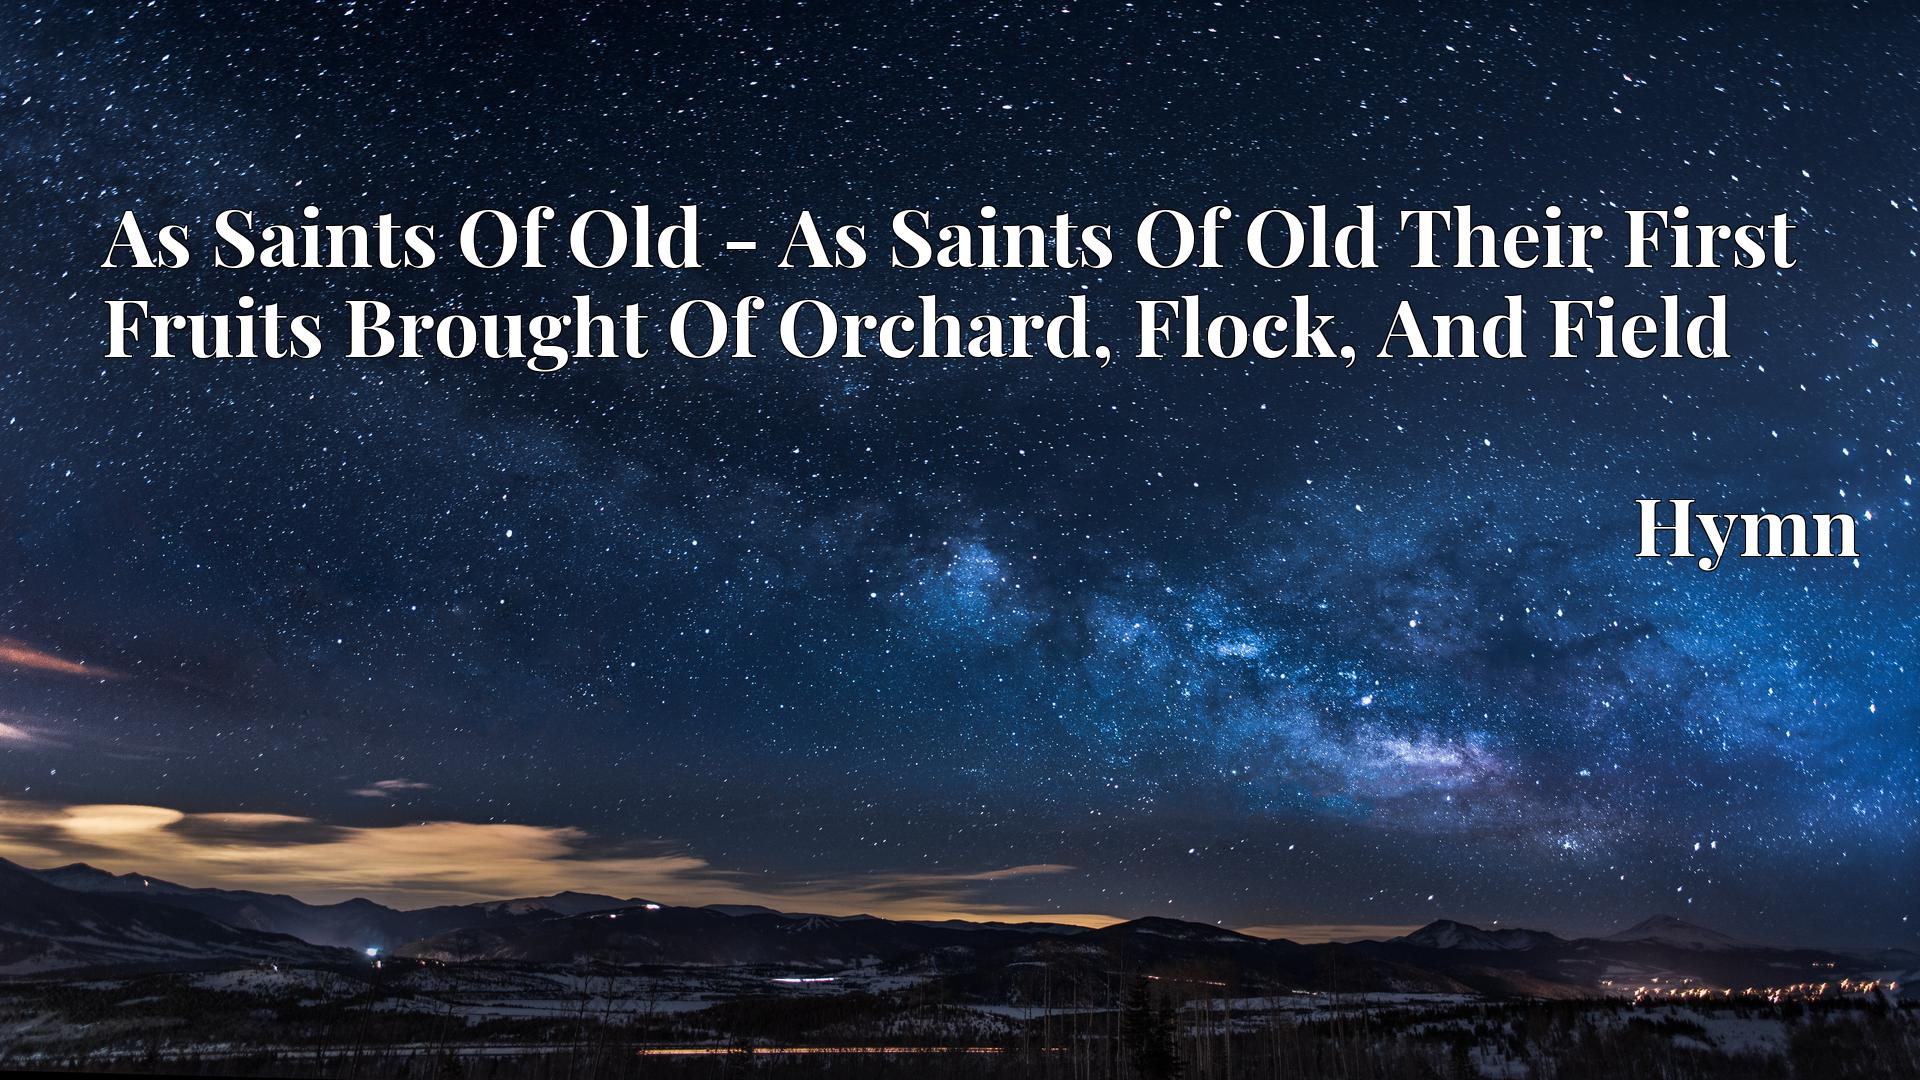 As Saints Of Old - As Saints Of Old Their First Fruits Brought Of Orchard, Flock, And Field - Hymn